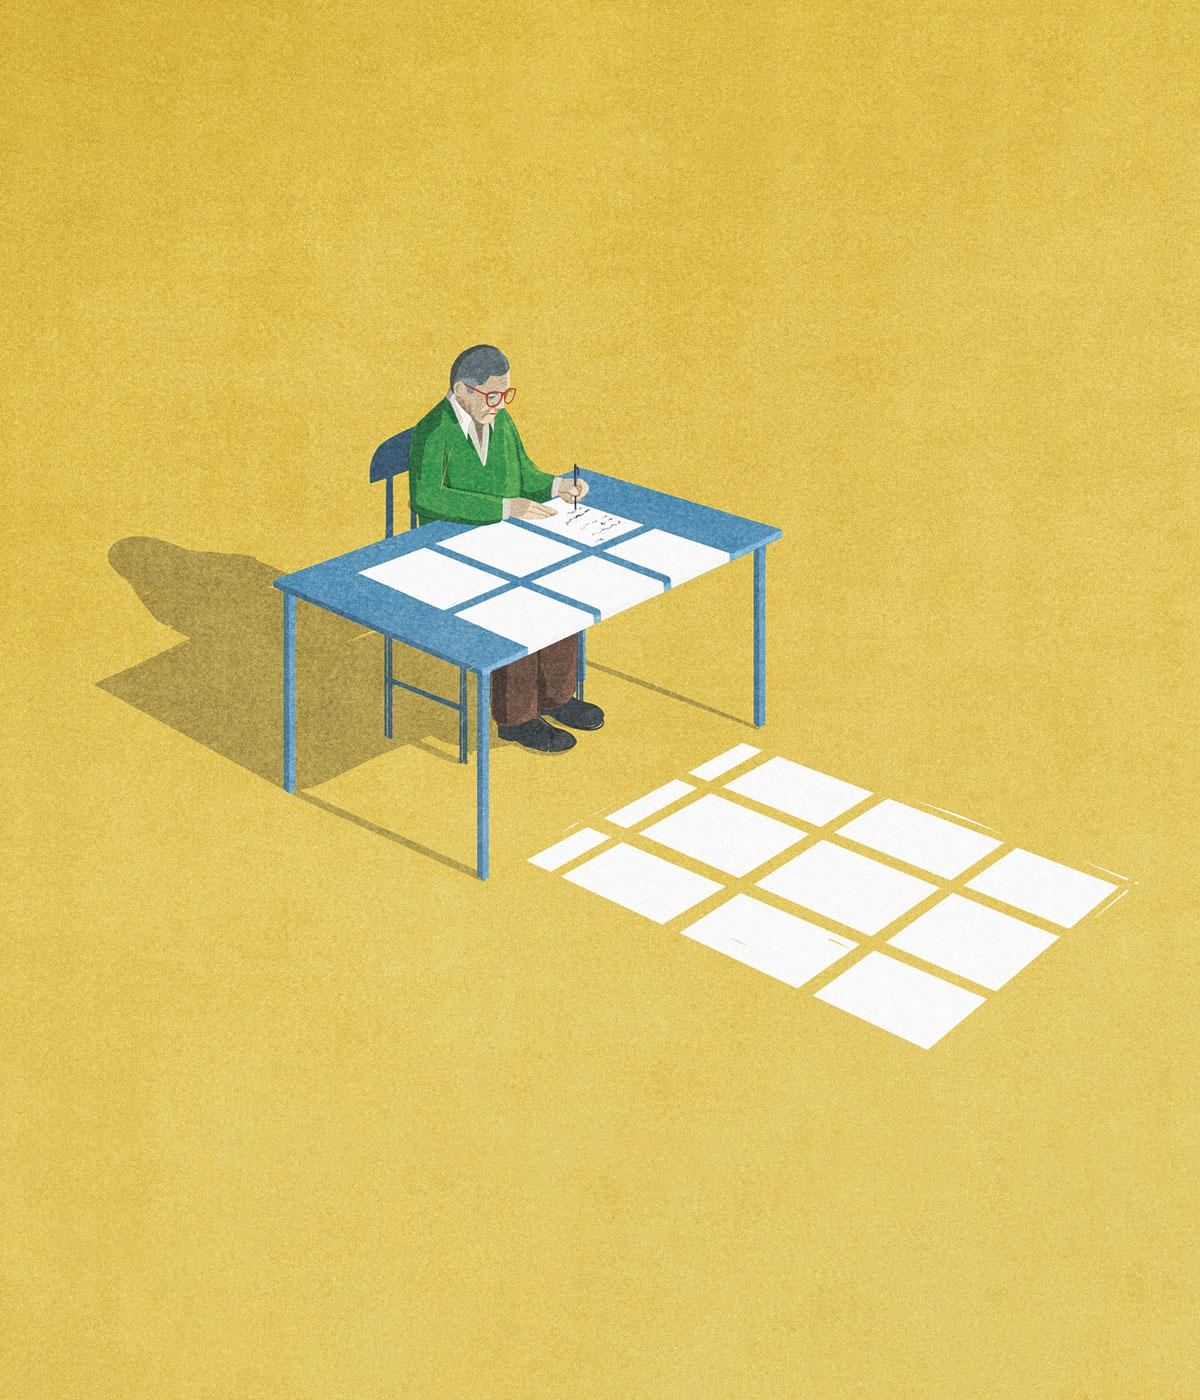 An illustration depicting a man at his desk writing a will